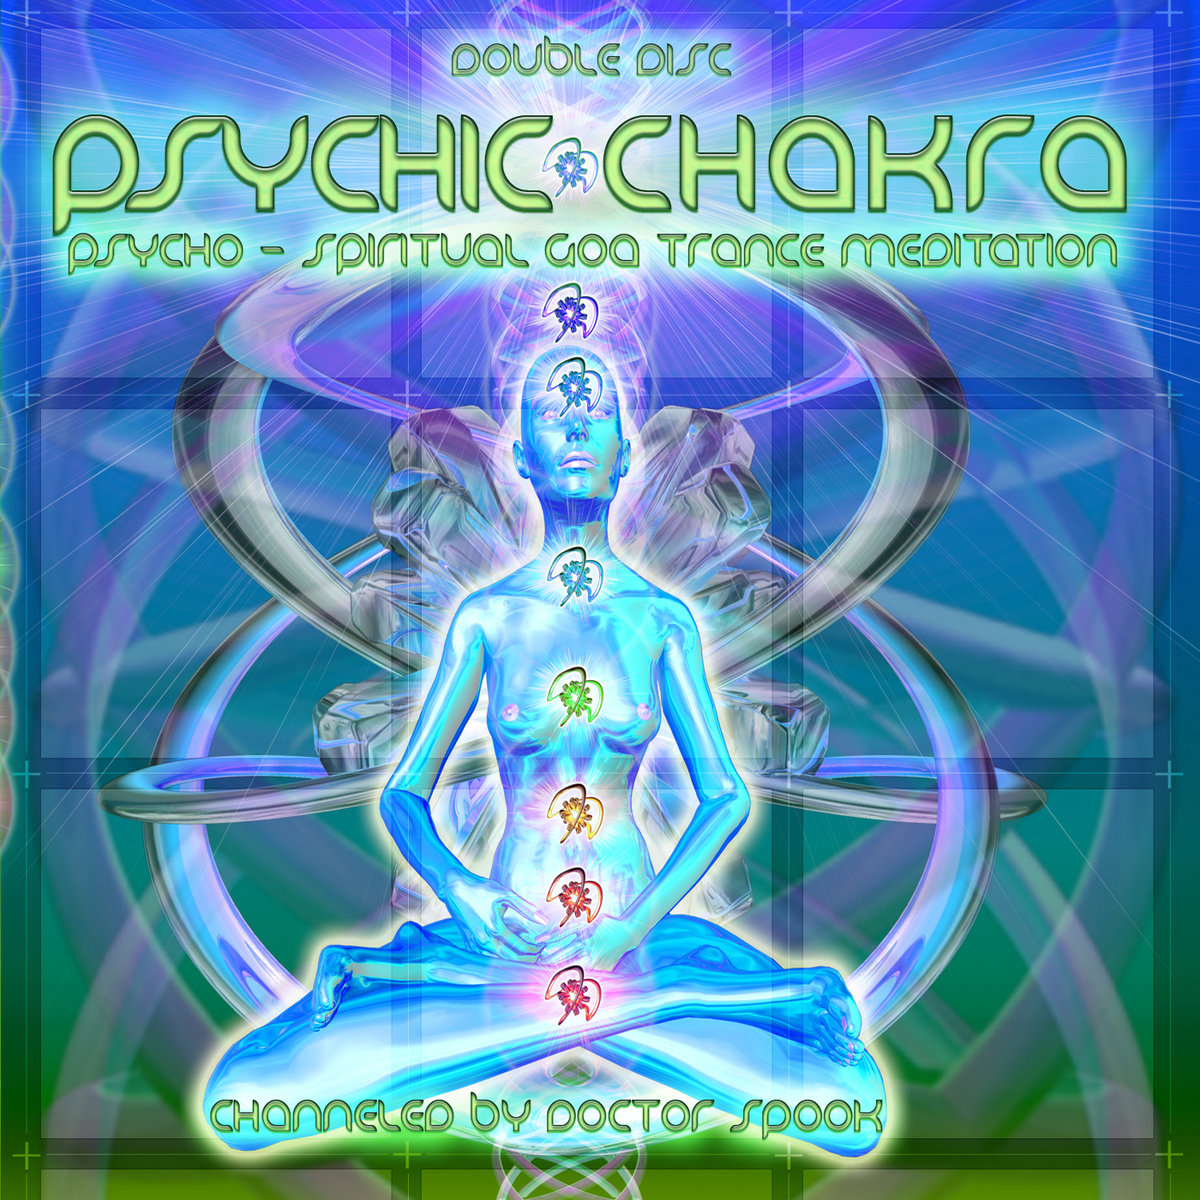 Vectro Electo - Goa Dream @ 'Various Artists - Psychic Chakra (Channeled by Dr. Spook)' album (electronic, psychic chakra)